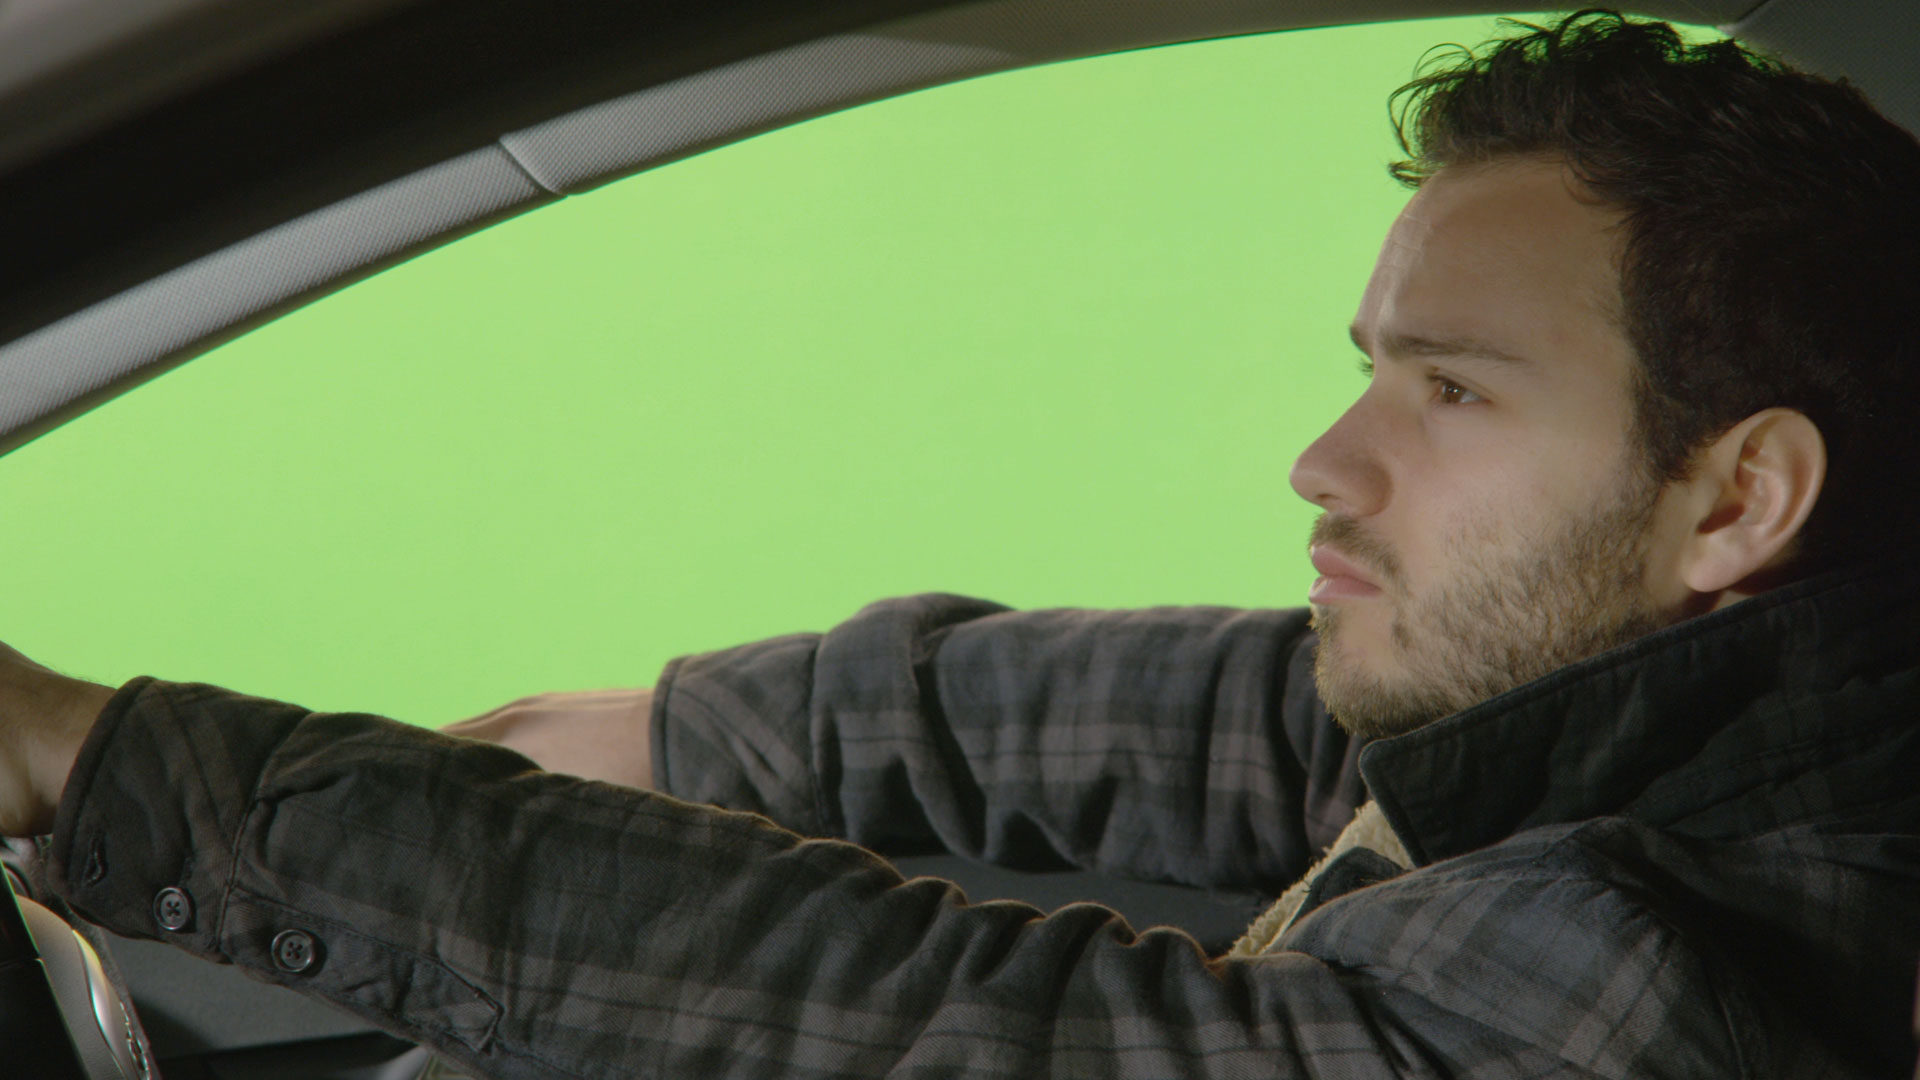 How to make the perfect green screen car shot